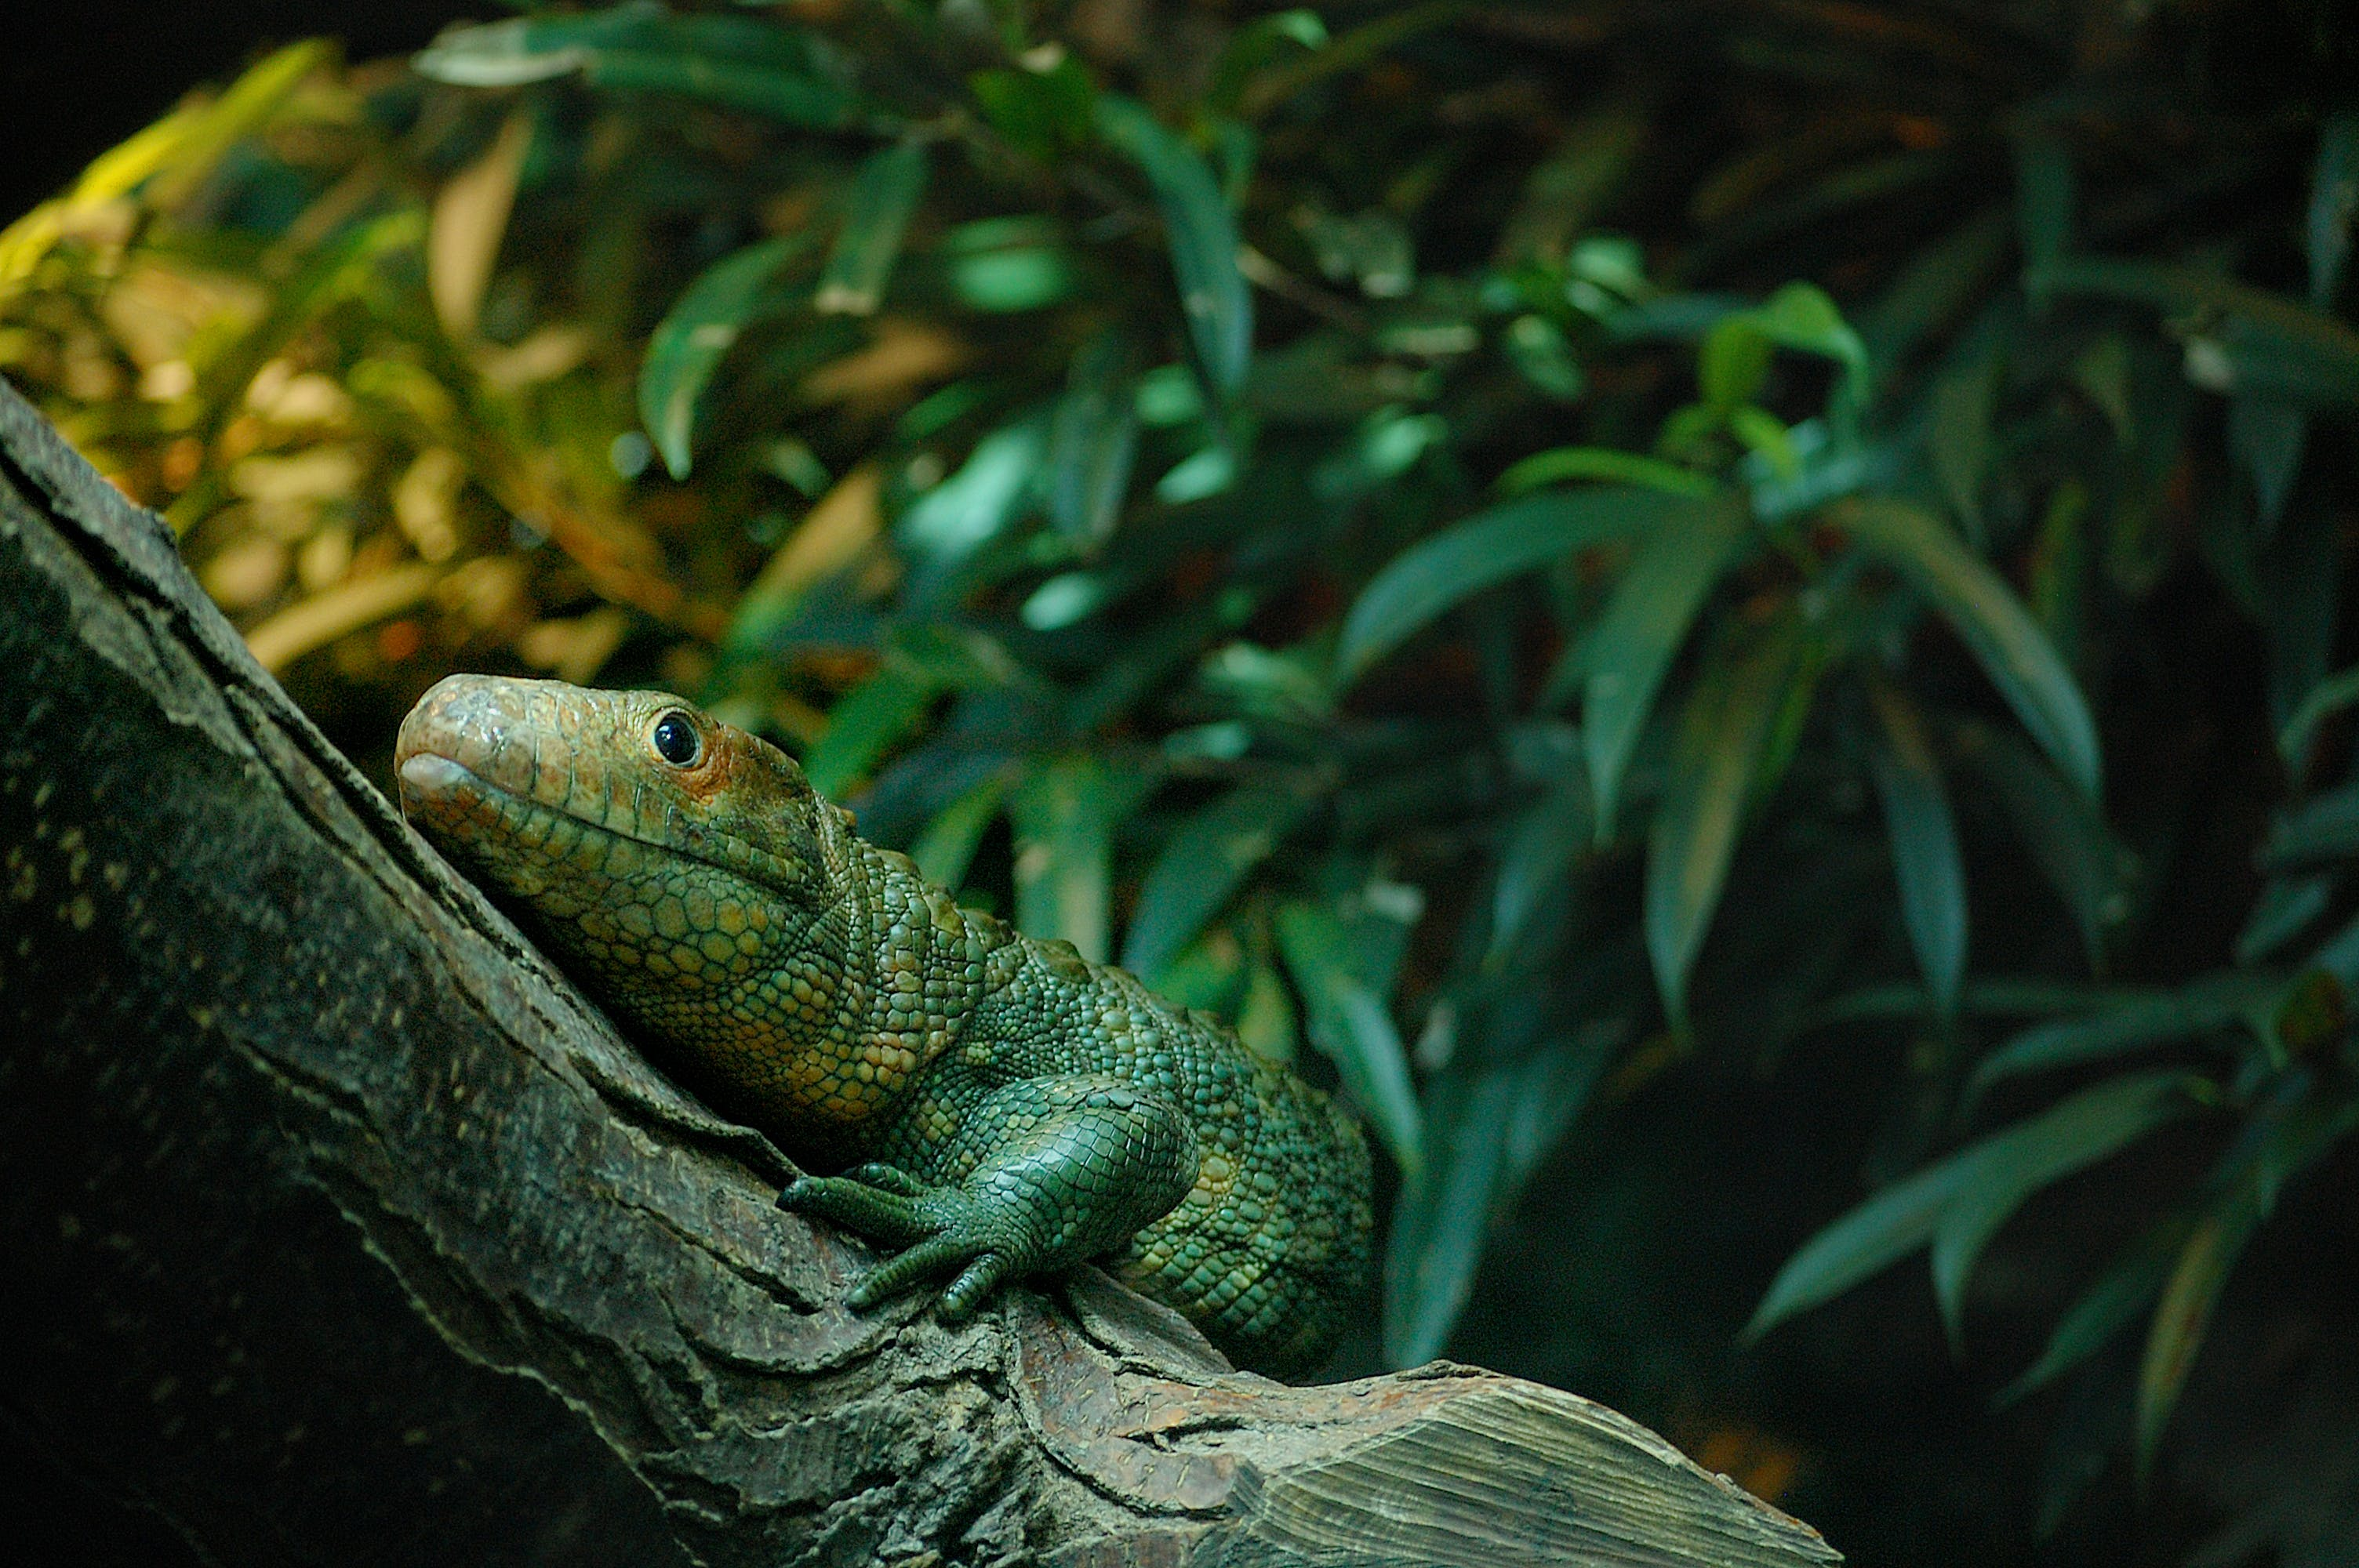 Free stock photo of animal, zoo, lizard, reptile